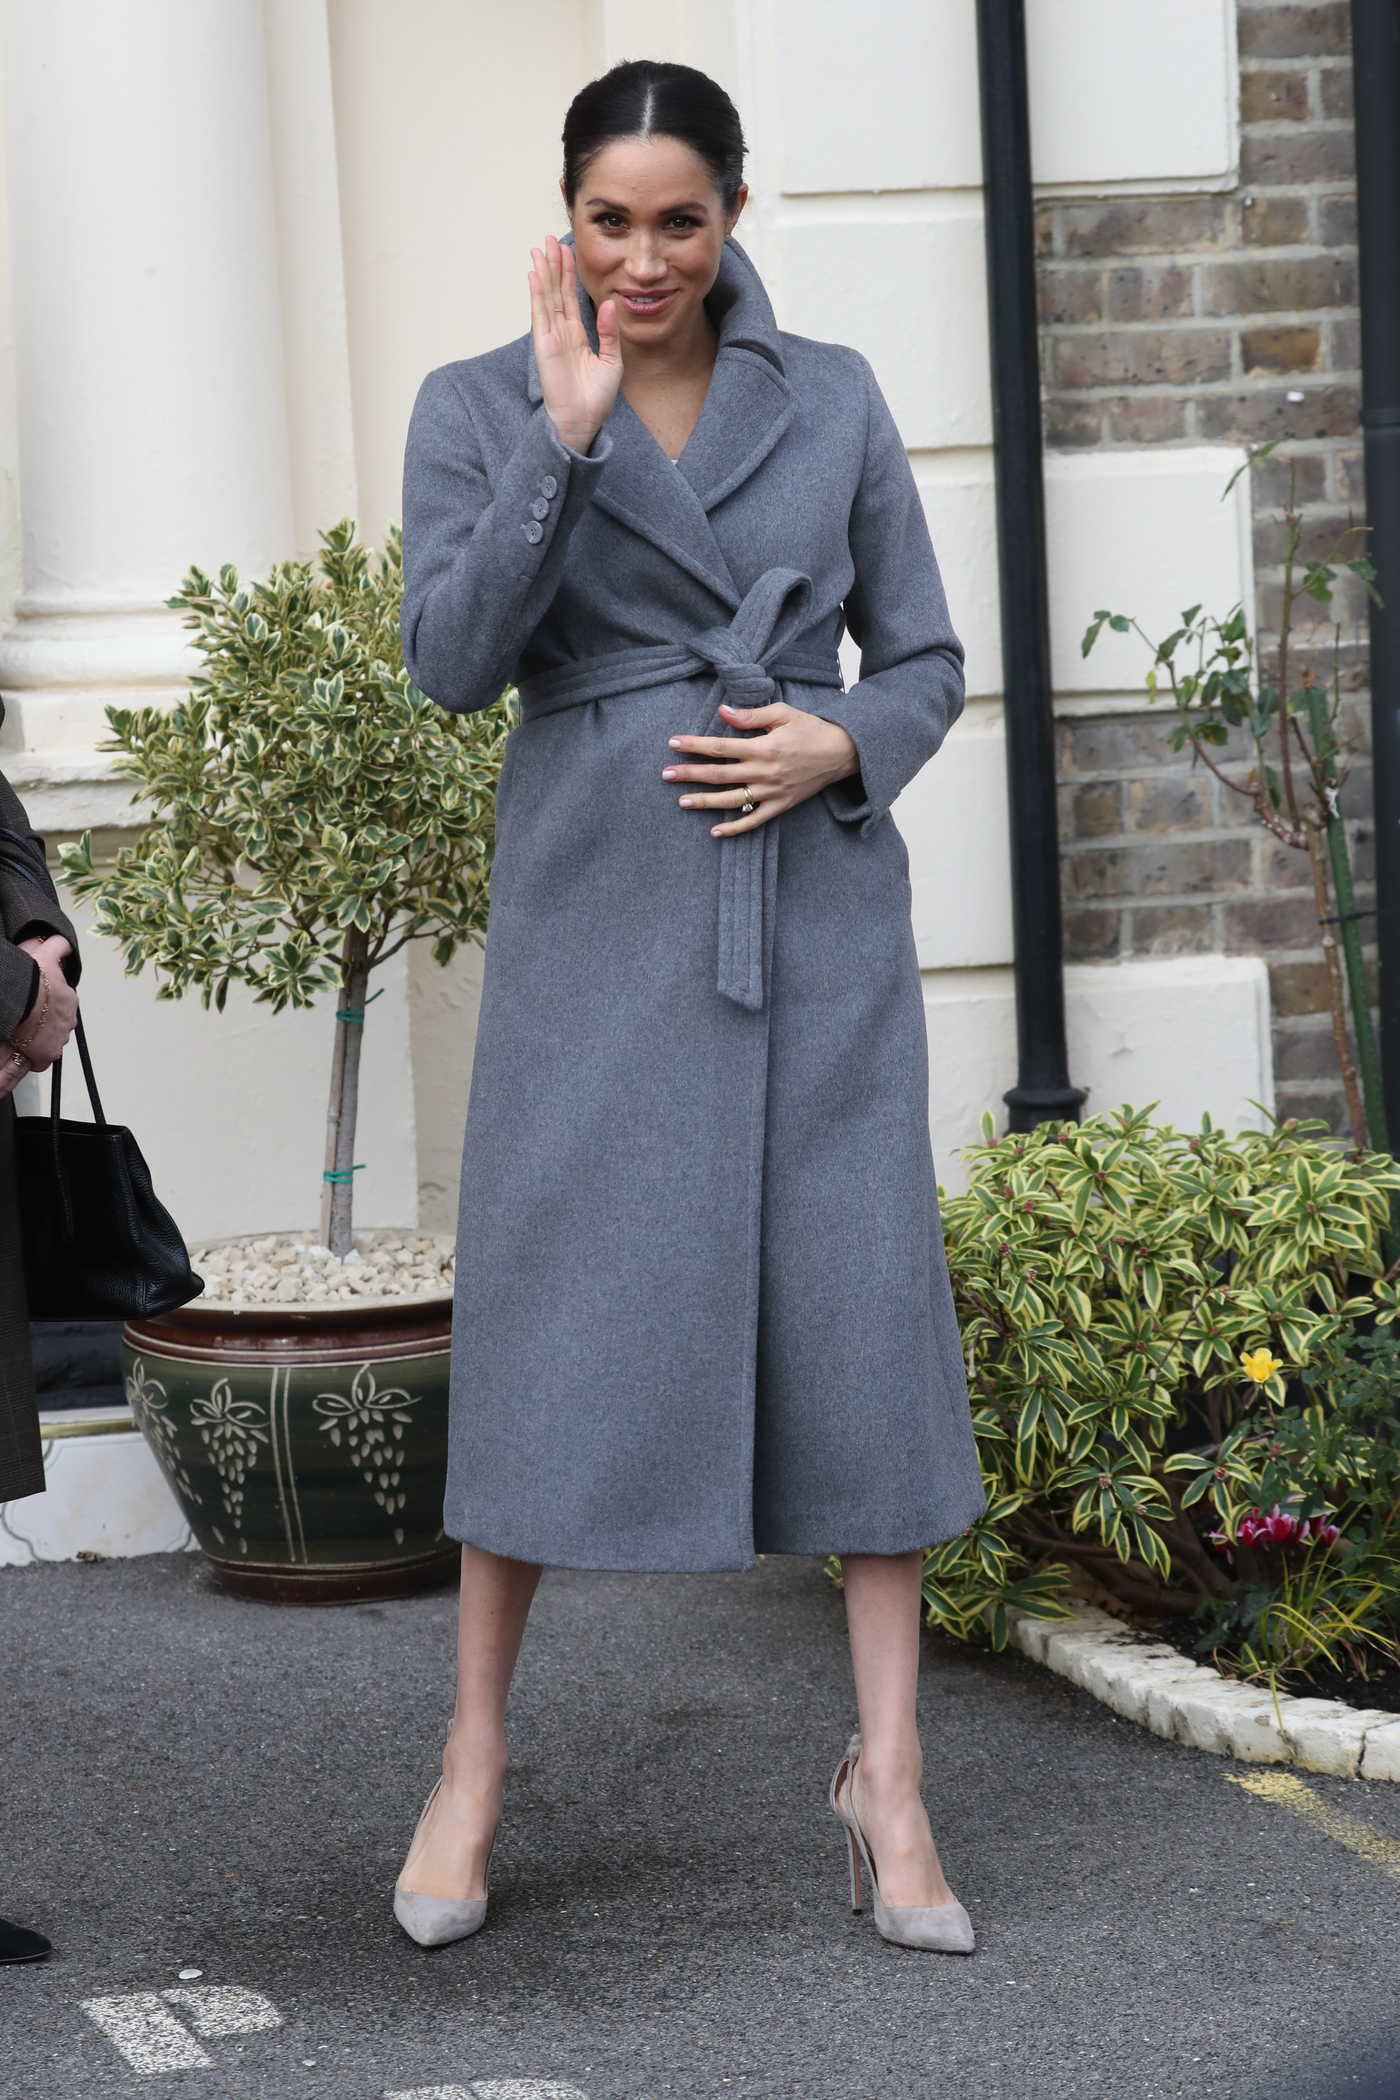 Meghan Markle in a Gray Coat Visits Brinsworth House in Isleworth 12/17/2018